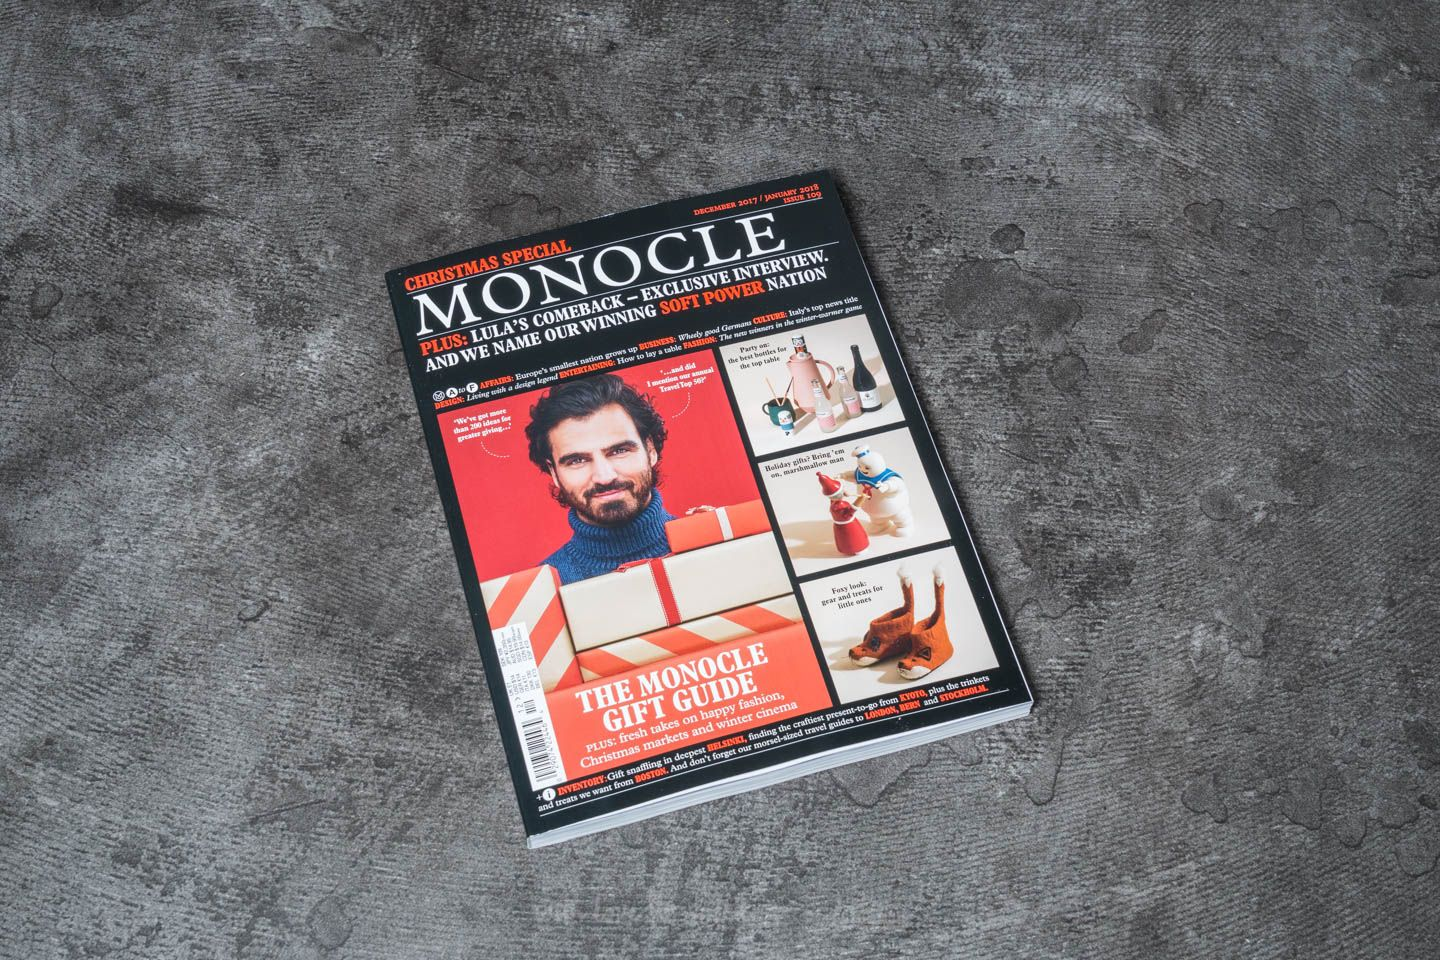 Monocle Christmas Special Magazine December 2017/ January 2018